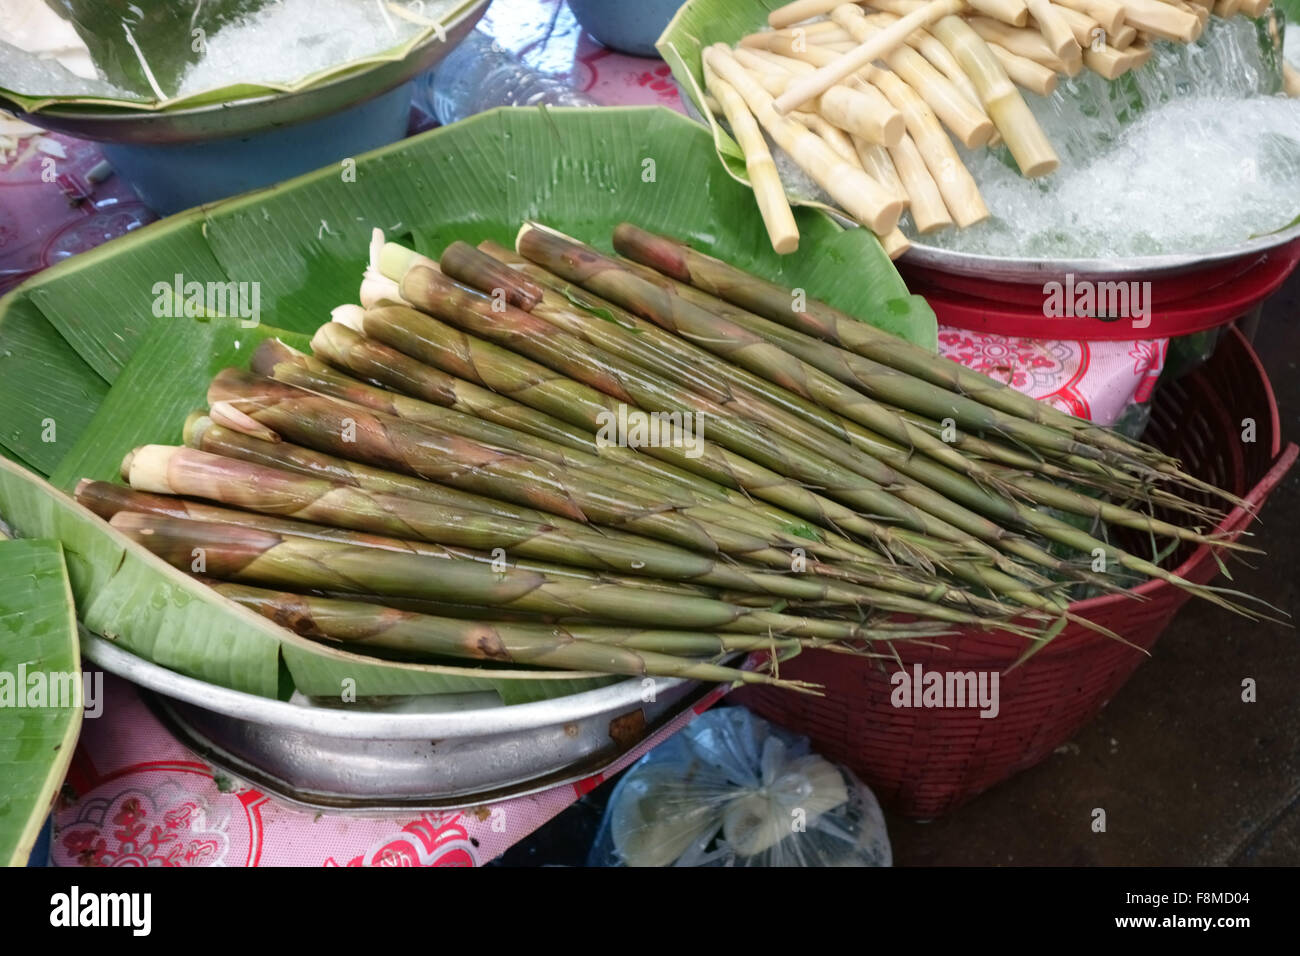 Bamboo shoots prepared for sale in a covered market in ther centre of Bangkok, Thailand, February - Stock Image